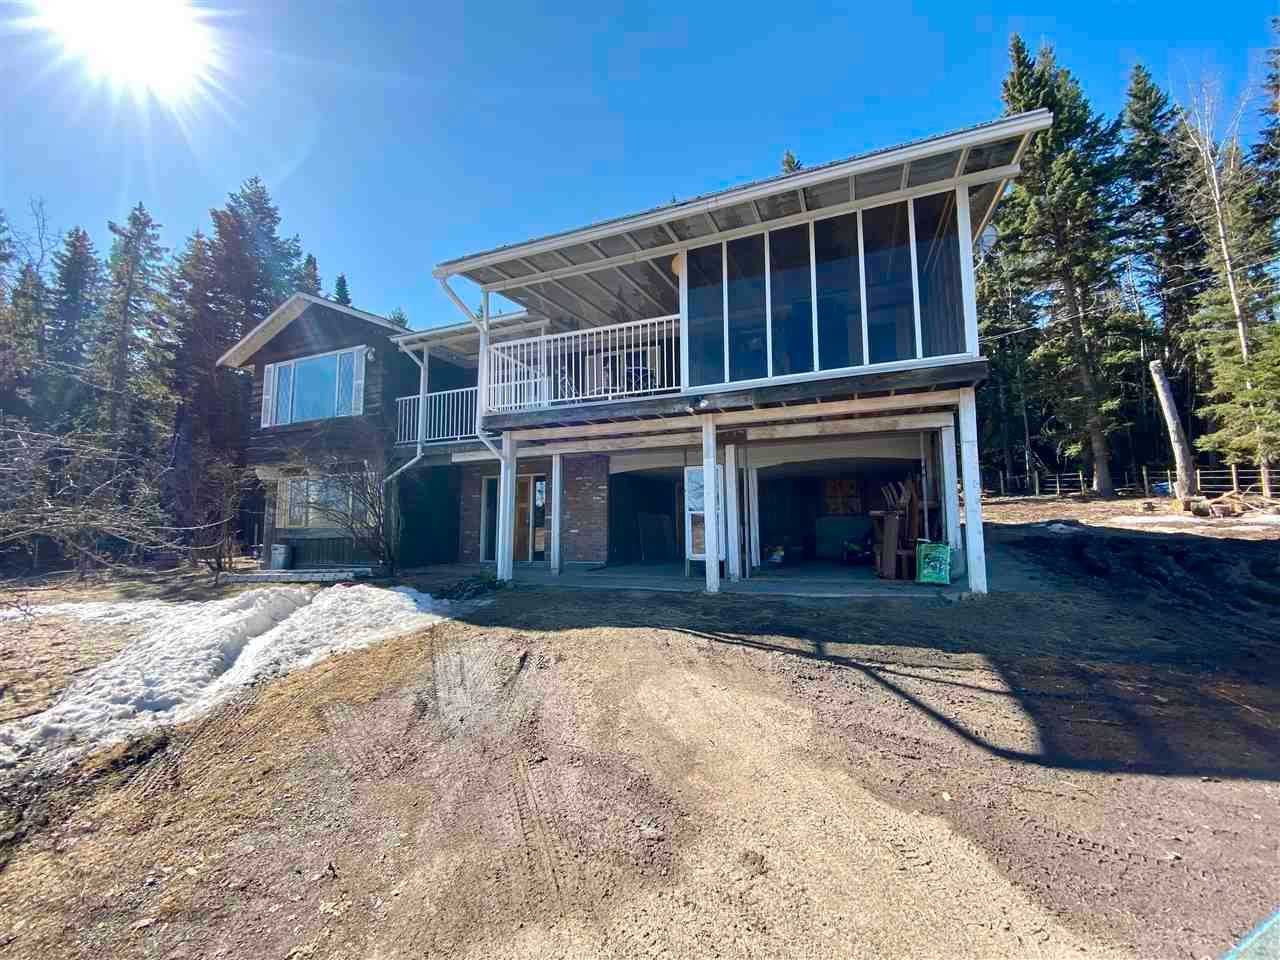 Main Photo: 1830 FOX MOUNTAIN Road in Williams Lake: Williams Lake - Rural North House for sale (Williams Lake (Zone 27))  : MLS®# R2571070